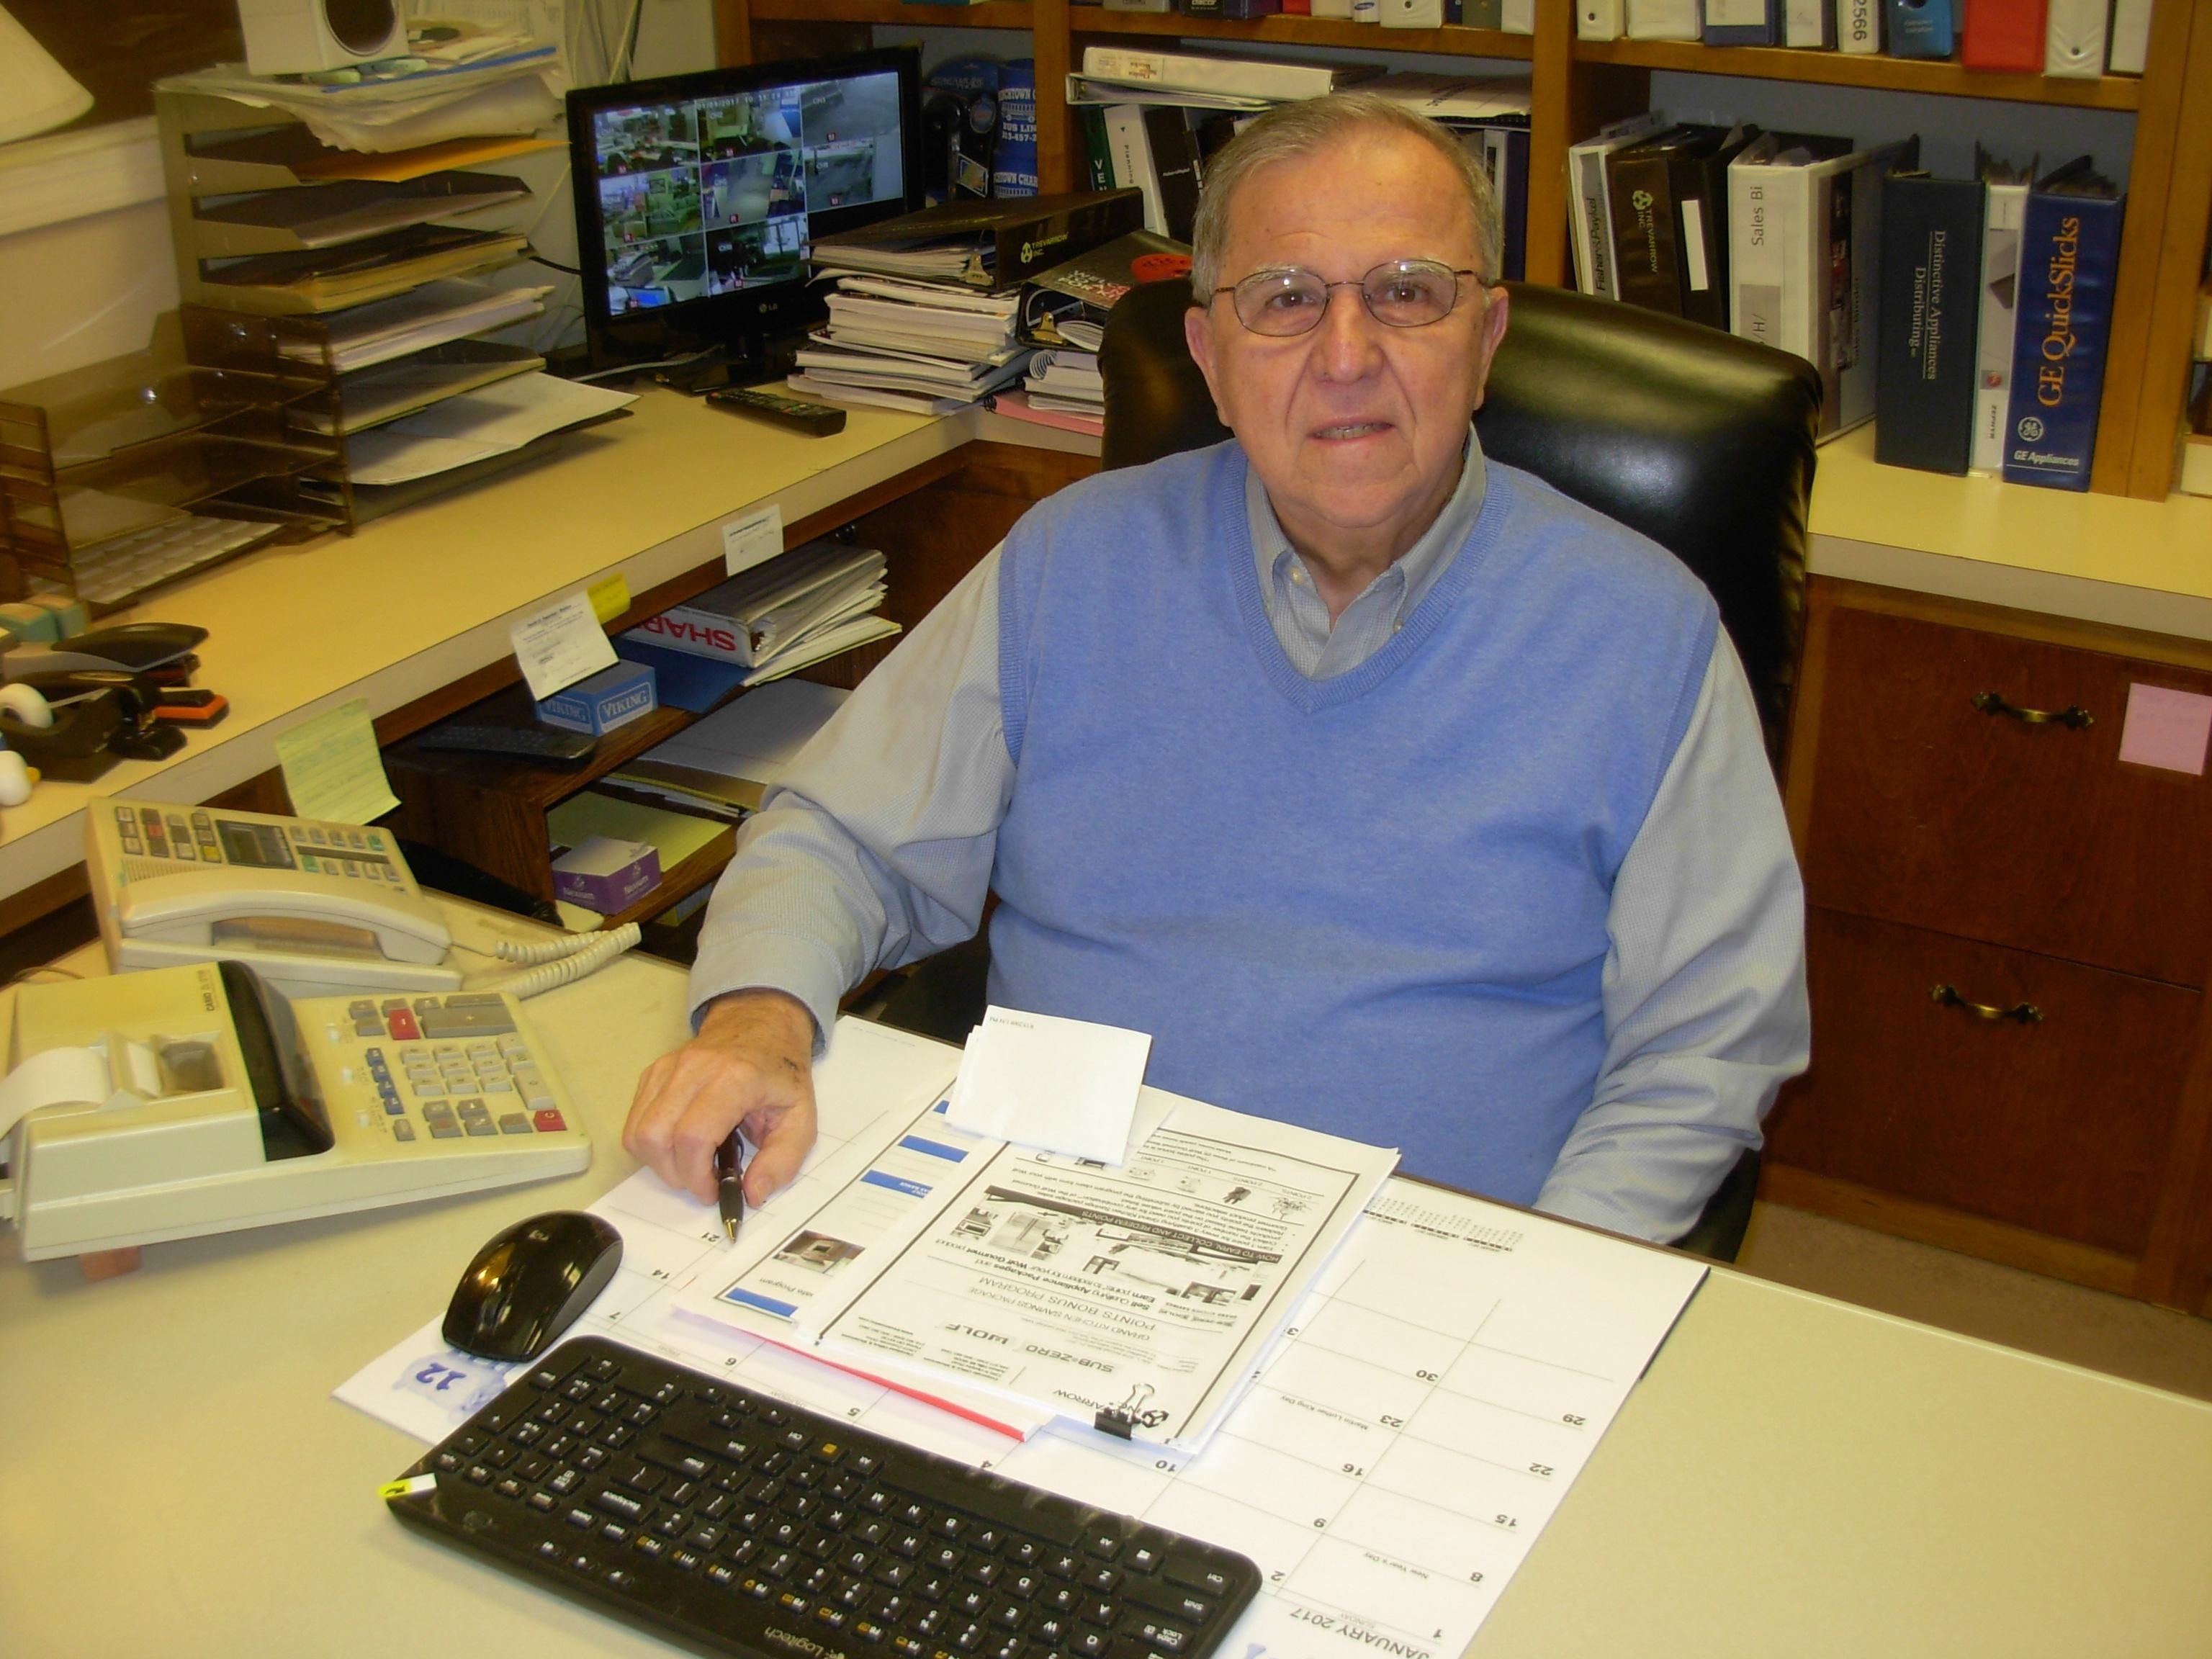 Stan Diroff Helped Durocheru0027s TV, Appliance And Furniture Store In Monroe MI  Grow Into A Multi Million Dollar Business. You Can Read His Story At The  Link.